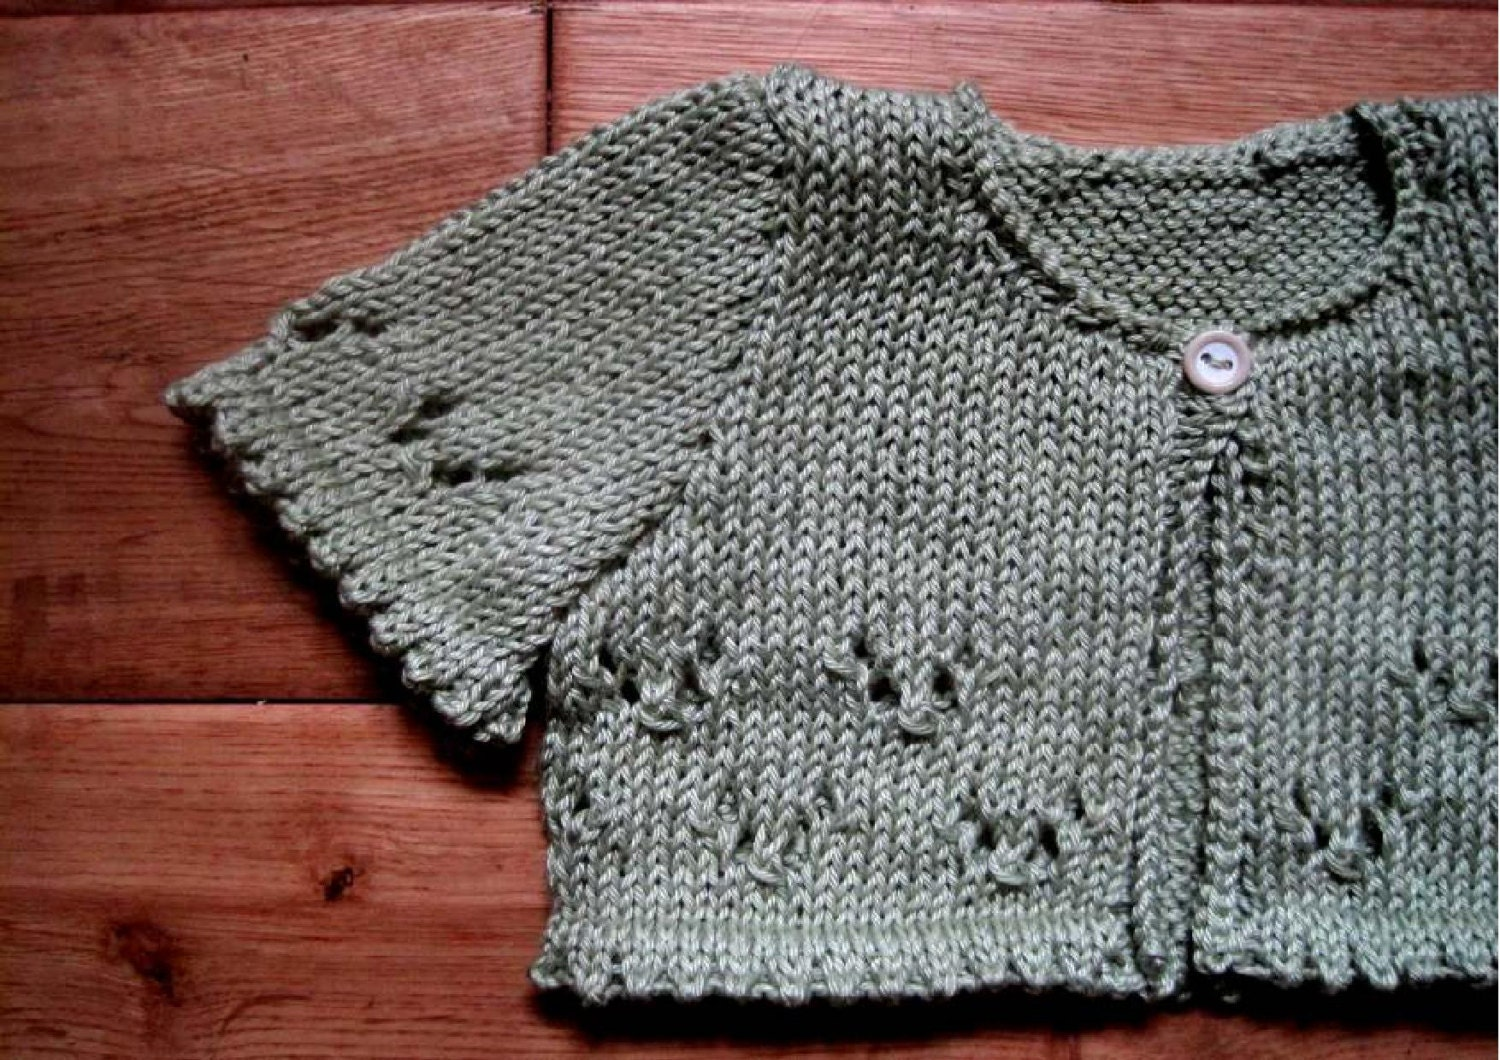 Knitting Cardigan For Baby : Baby cardigan knitting pattern instant download pdf